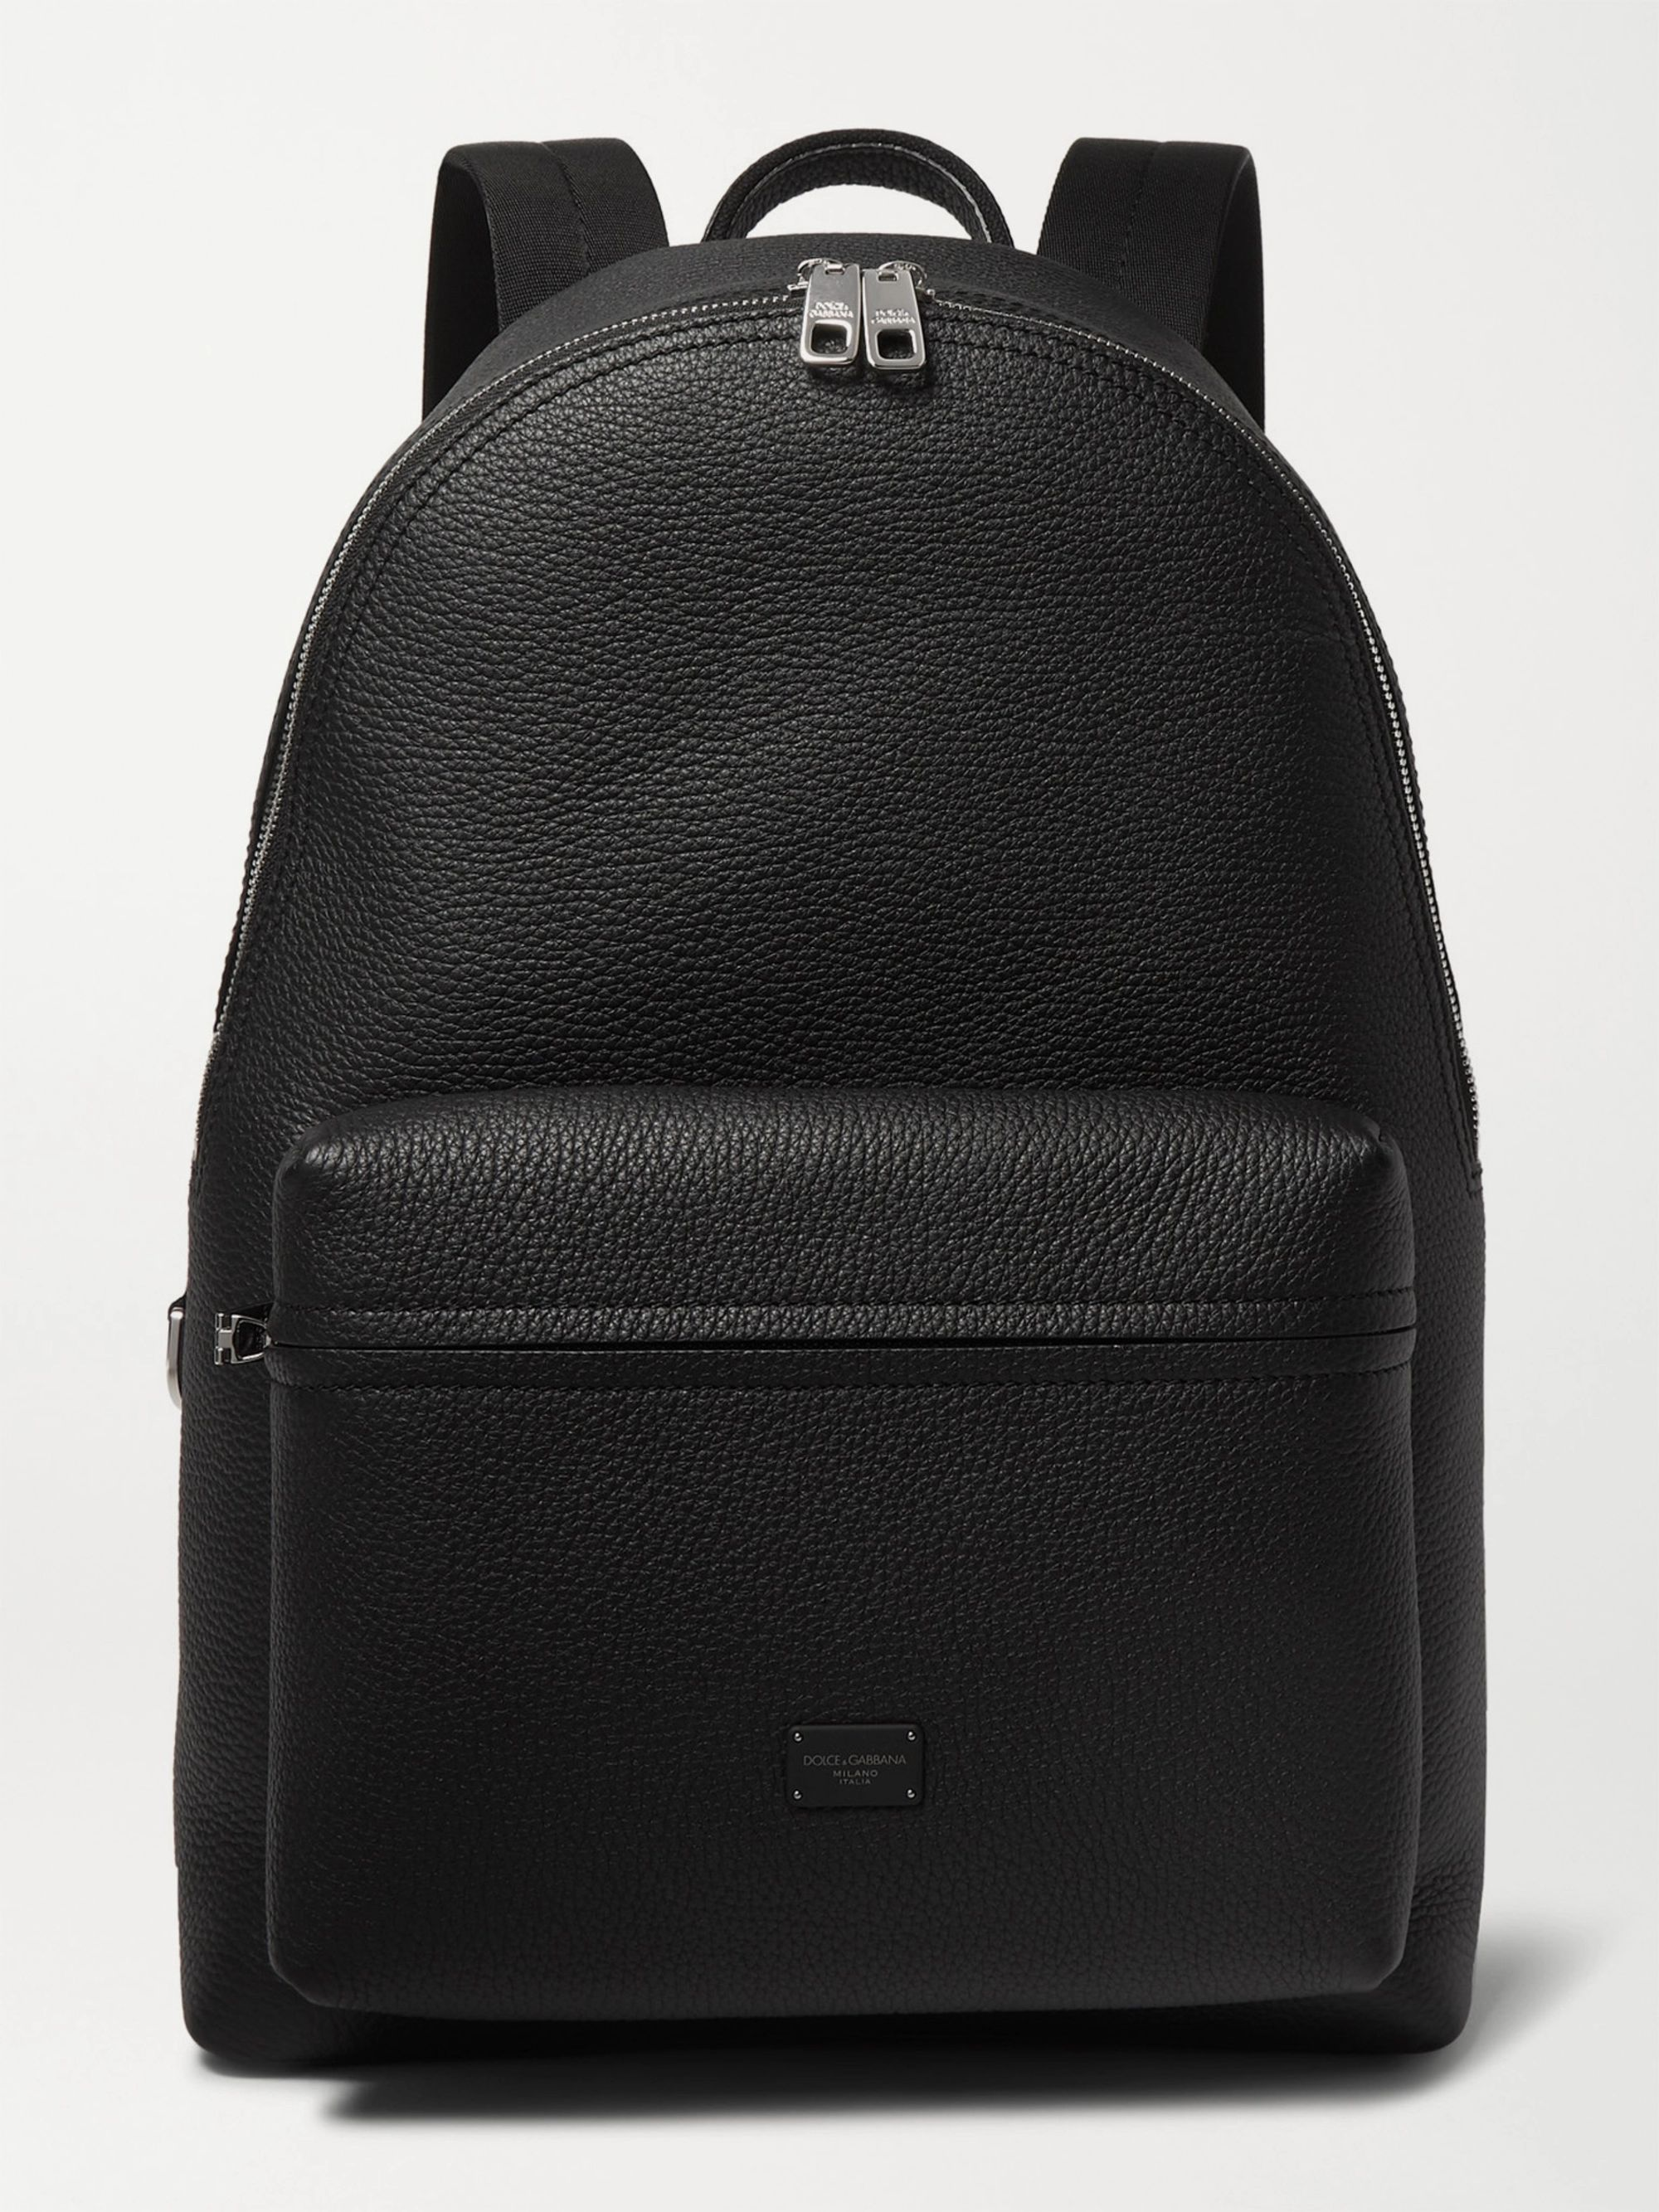 Dolce & Gabbana Full-Grain Leather Backpack